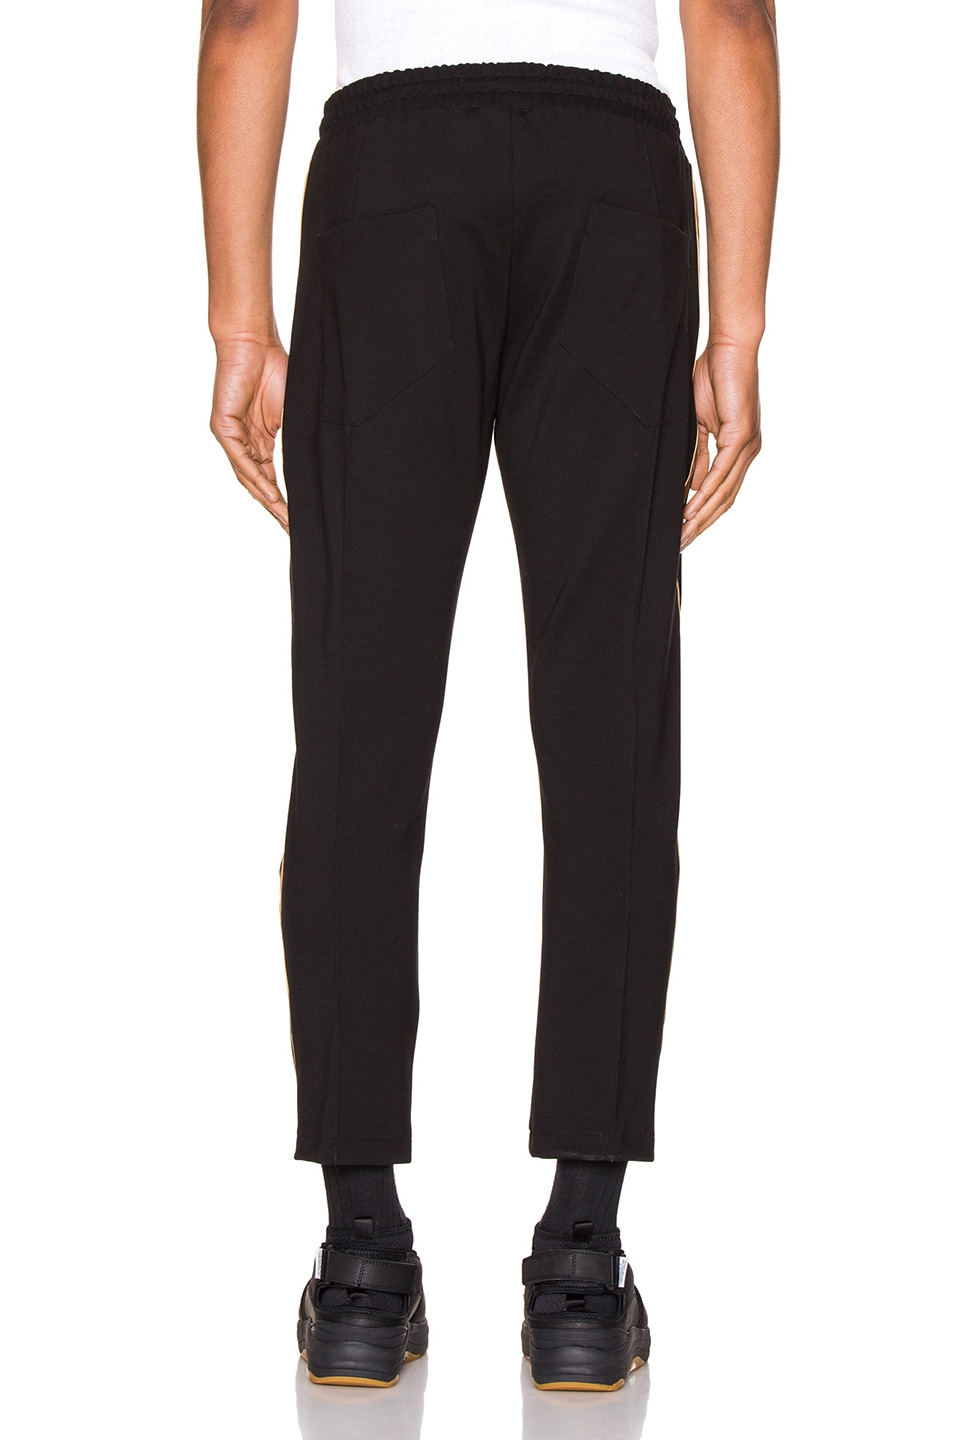 Image 4 of Rhude Traxedo Pant in Black & Gold